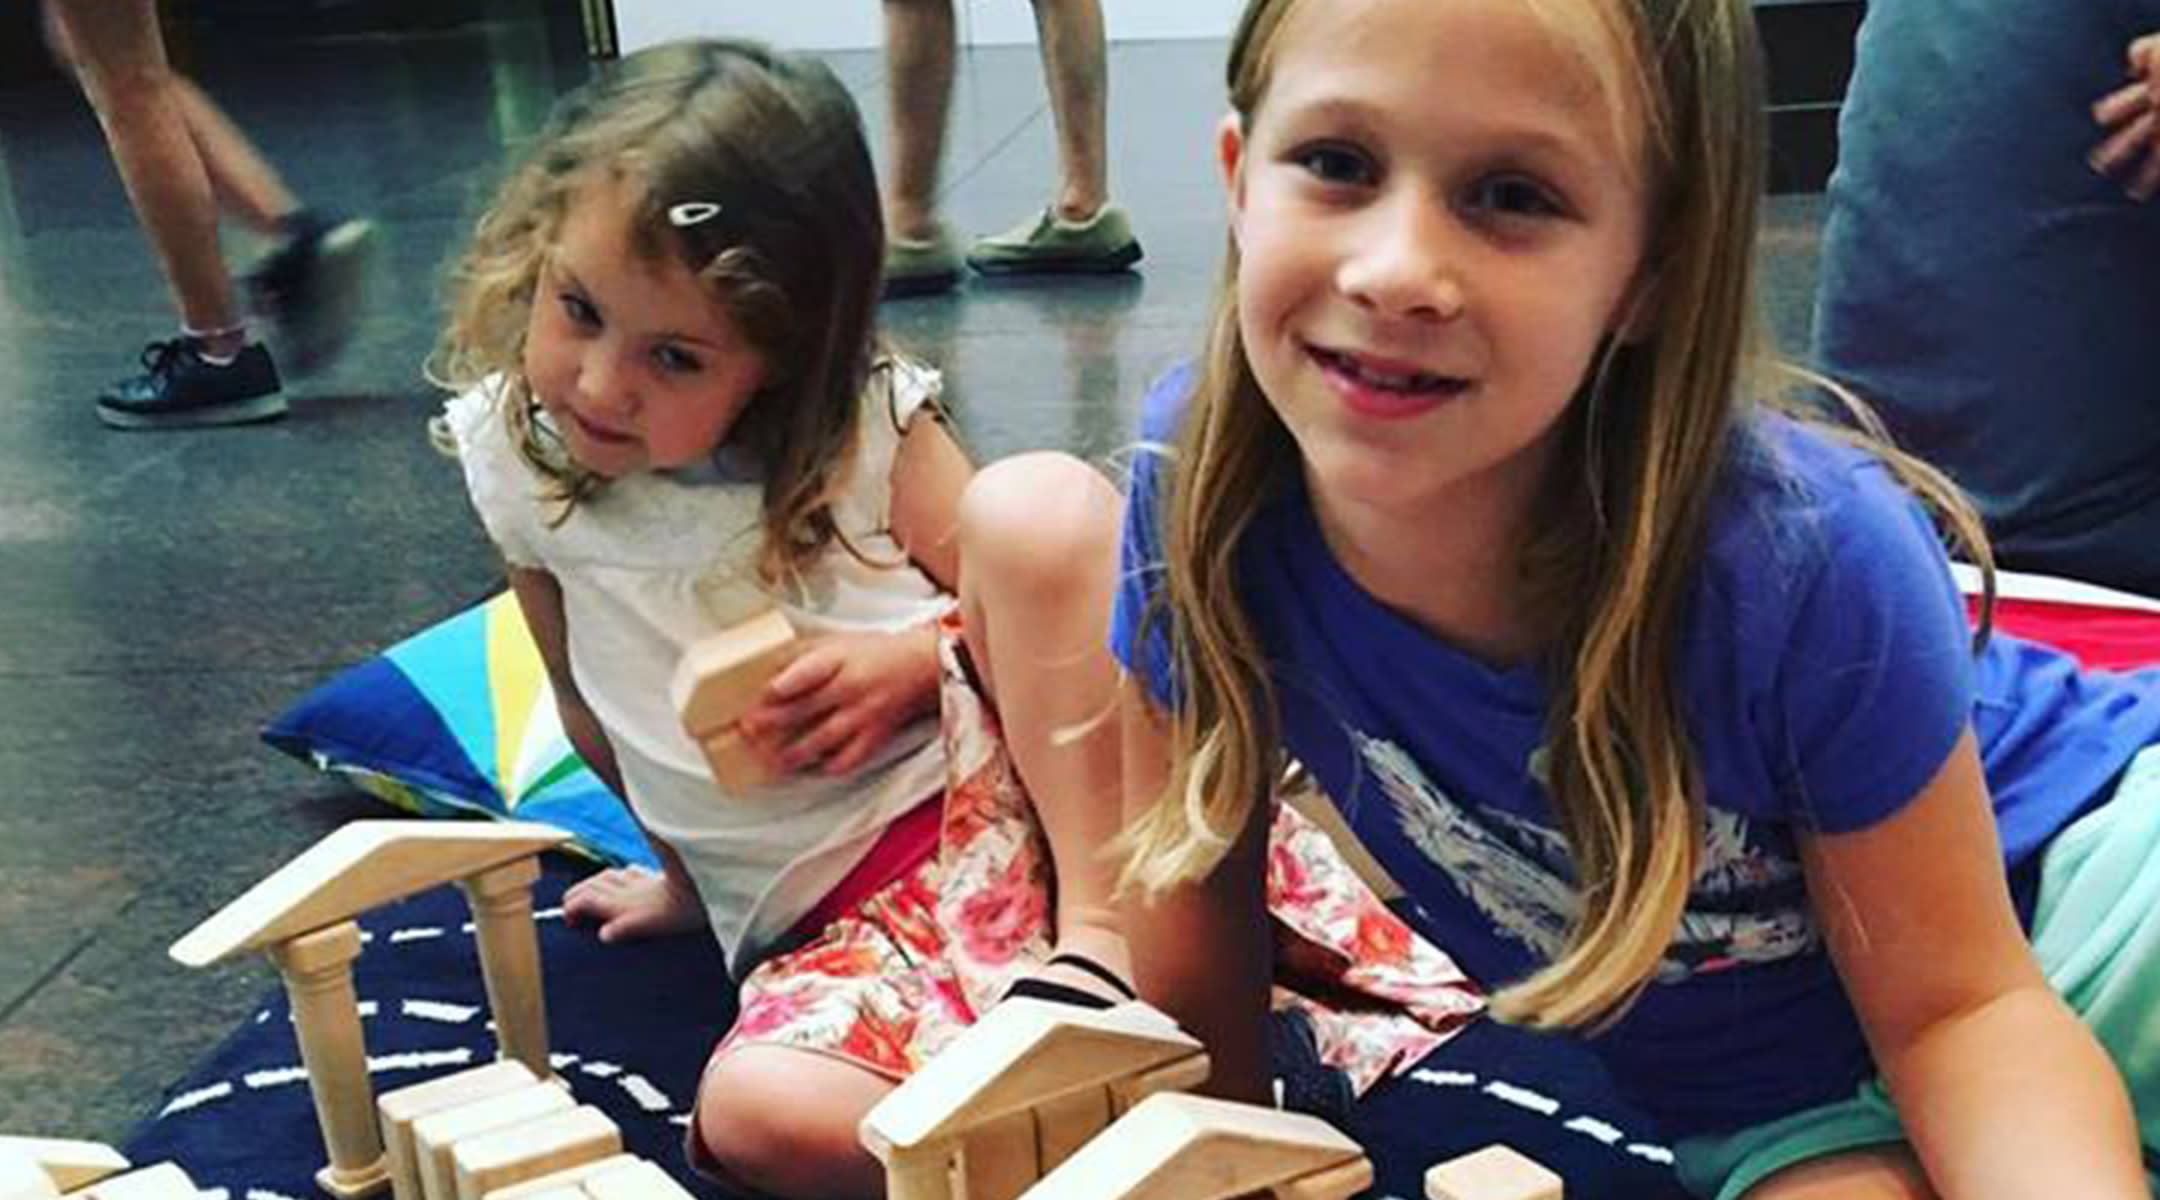 Two girls playing with blocks at a museum